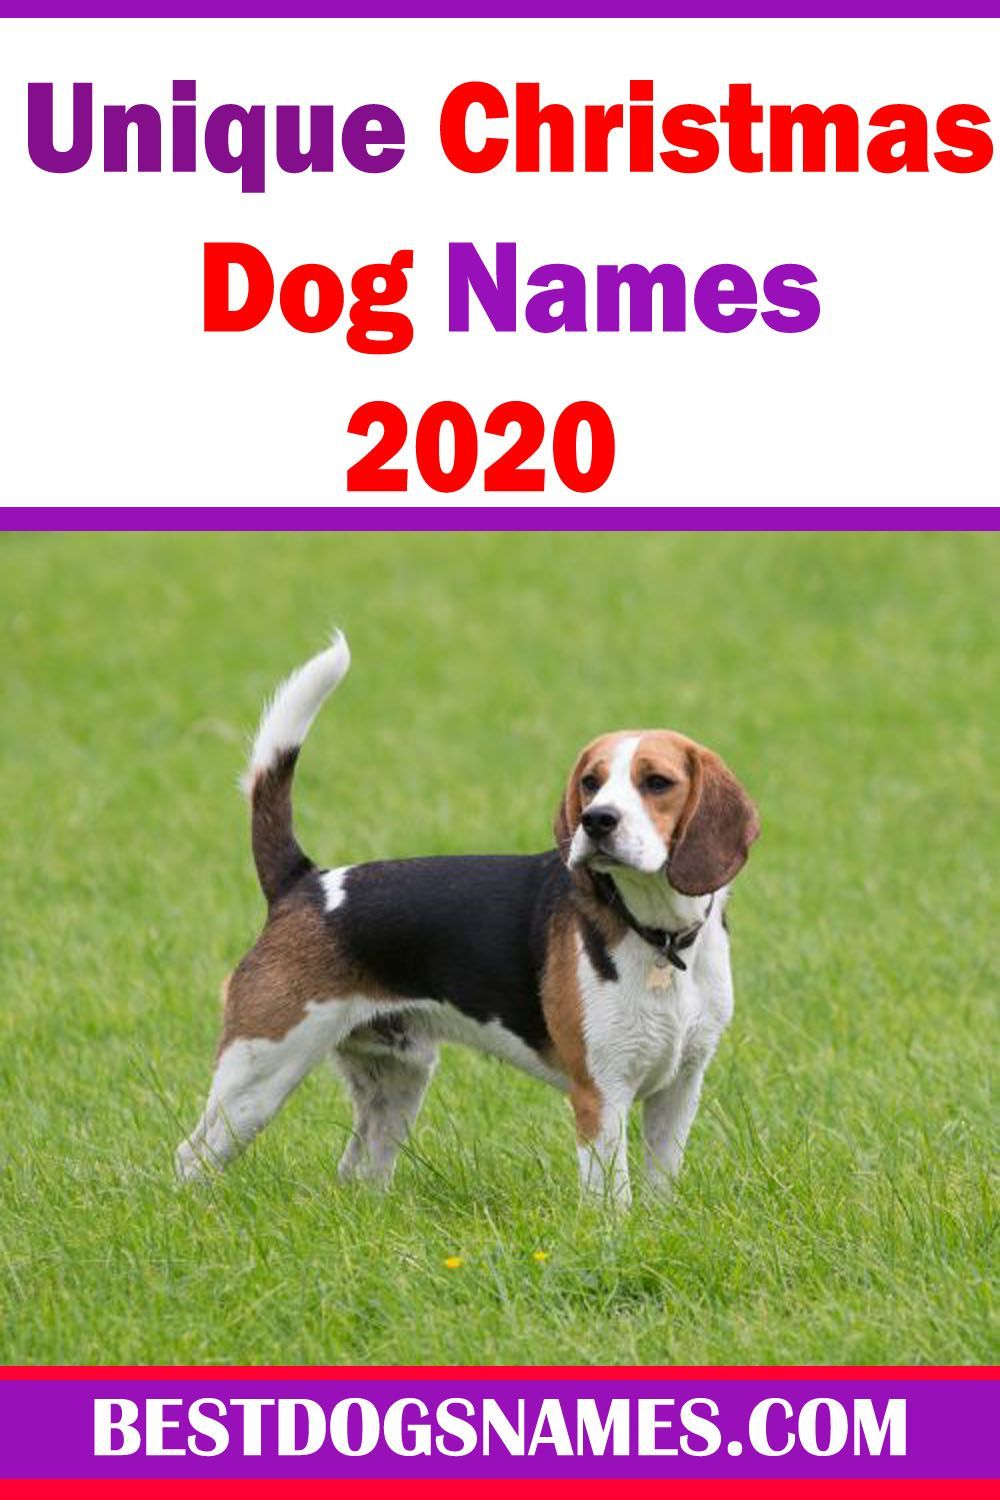 700 Unique Female Dog Names For 2020 Pawleaks In 2020 Dog Names Female Dog Names Student Debt